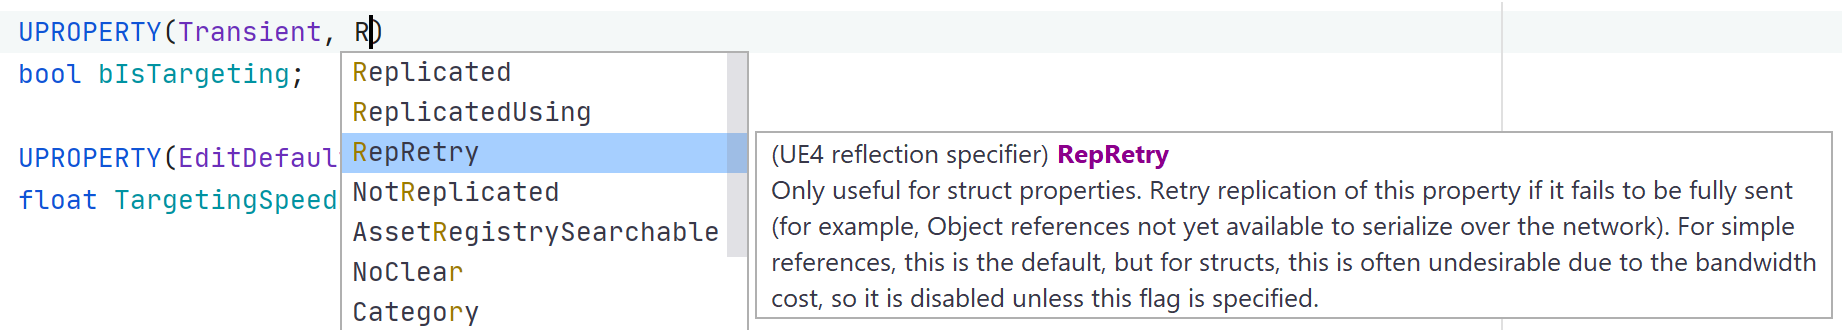 JetBrains Rider: Code completion for Unreal Engine reflection specifiers